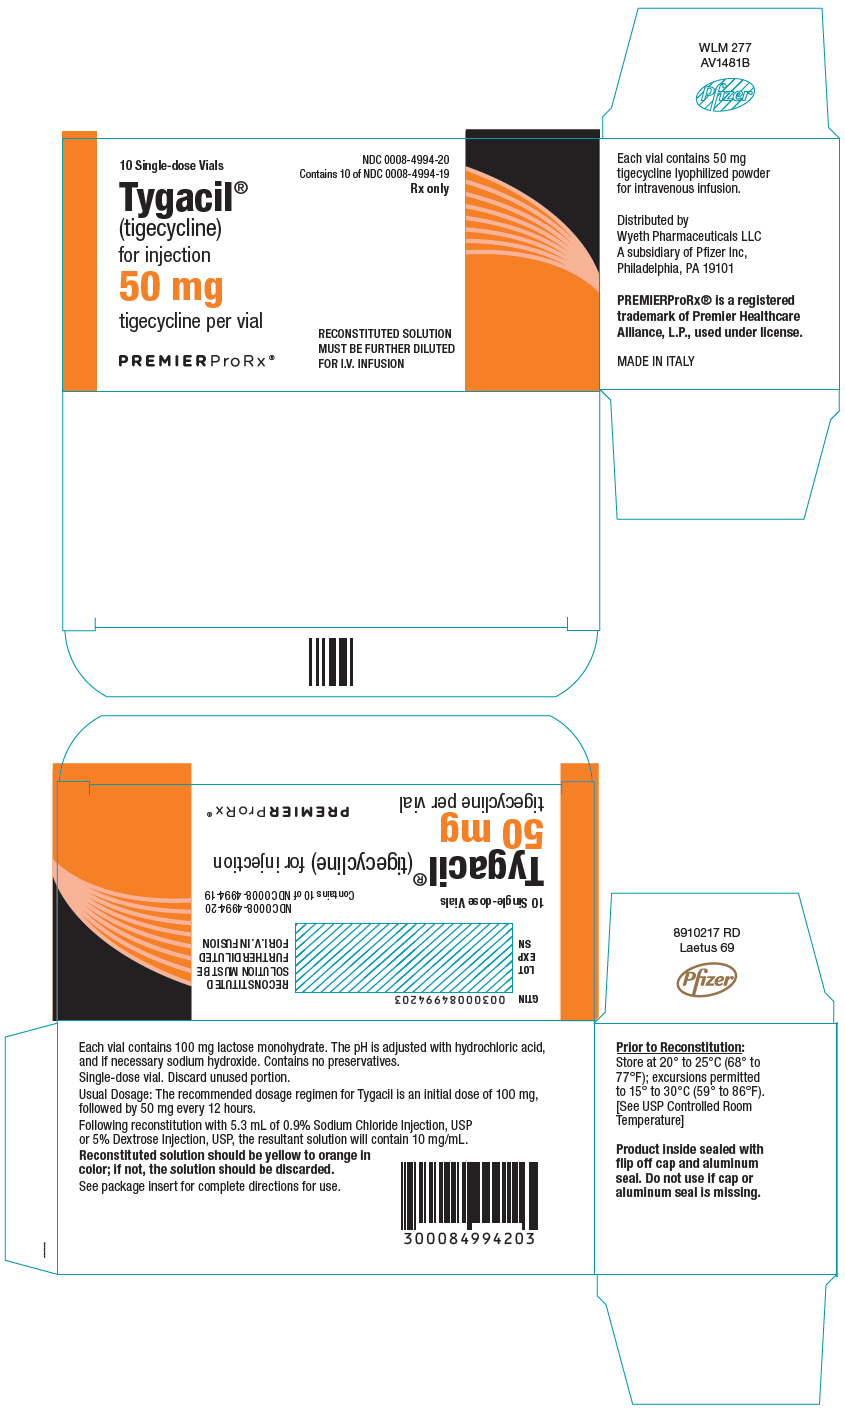 Wizmed Drug Label for Wyeth Pharmaceuticals LLC, a subsidiary of Pfizer  - TIGECYCLINE NDC number 0008-4994-20